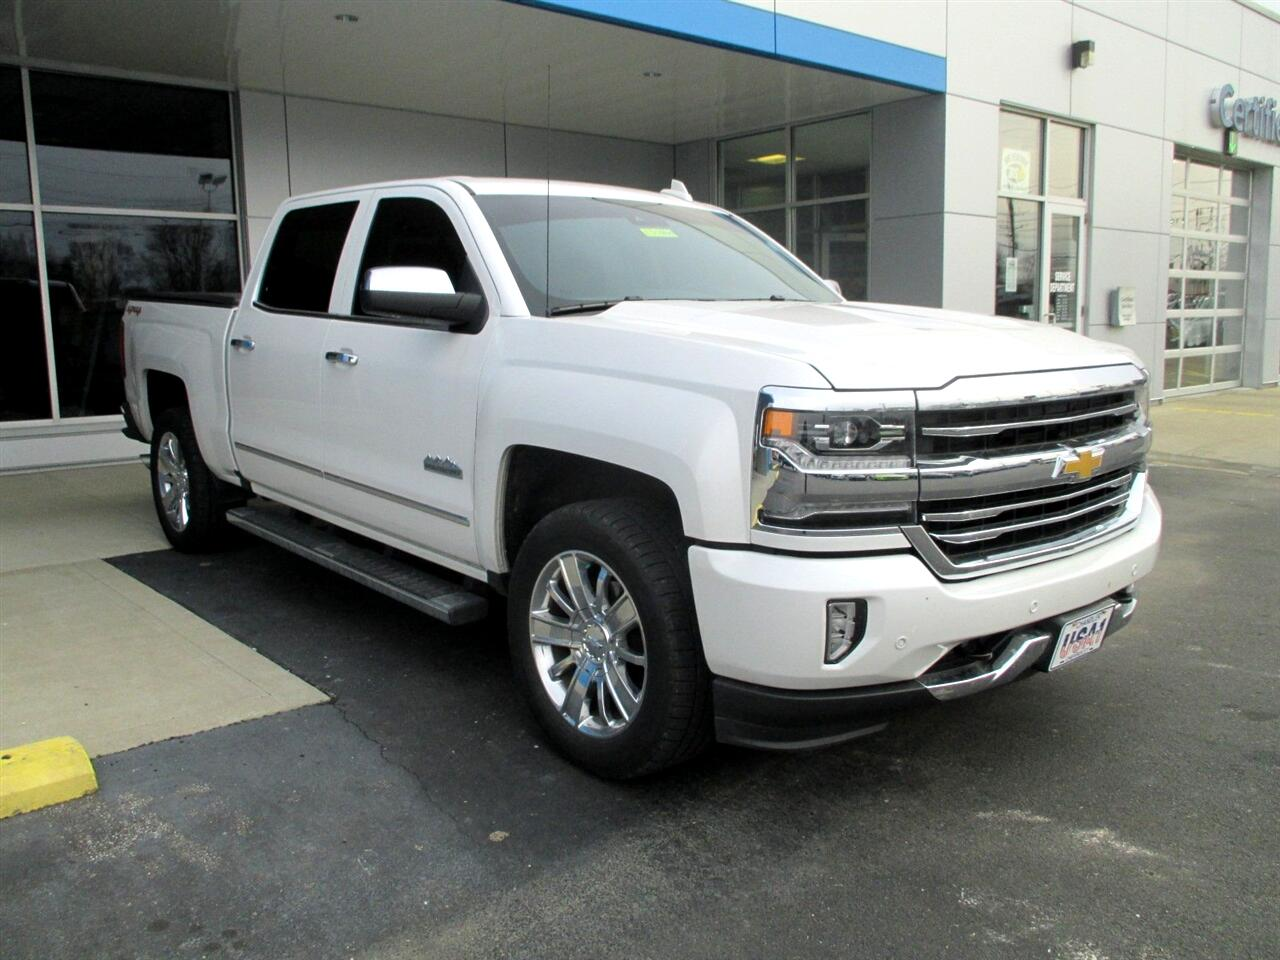 2017 Chevrolet Silverado 1500 High Country Crew Cab Long Box 4WD